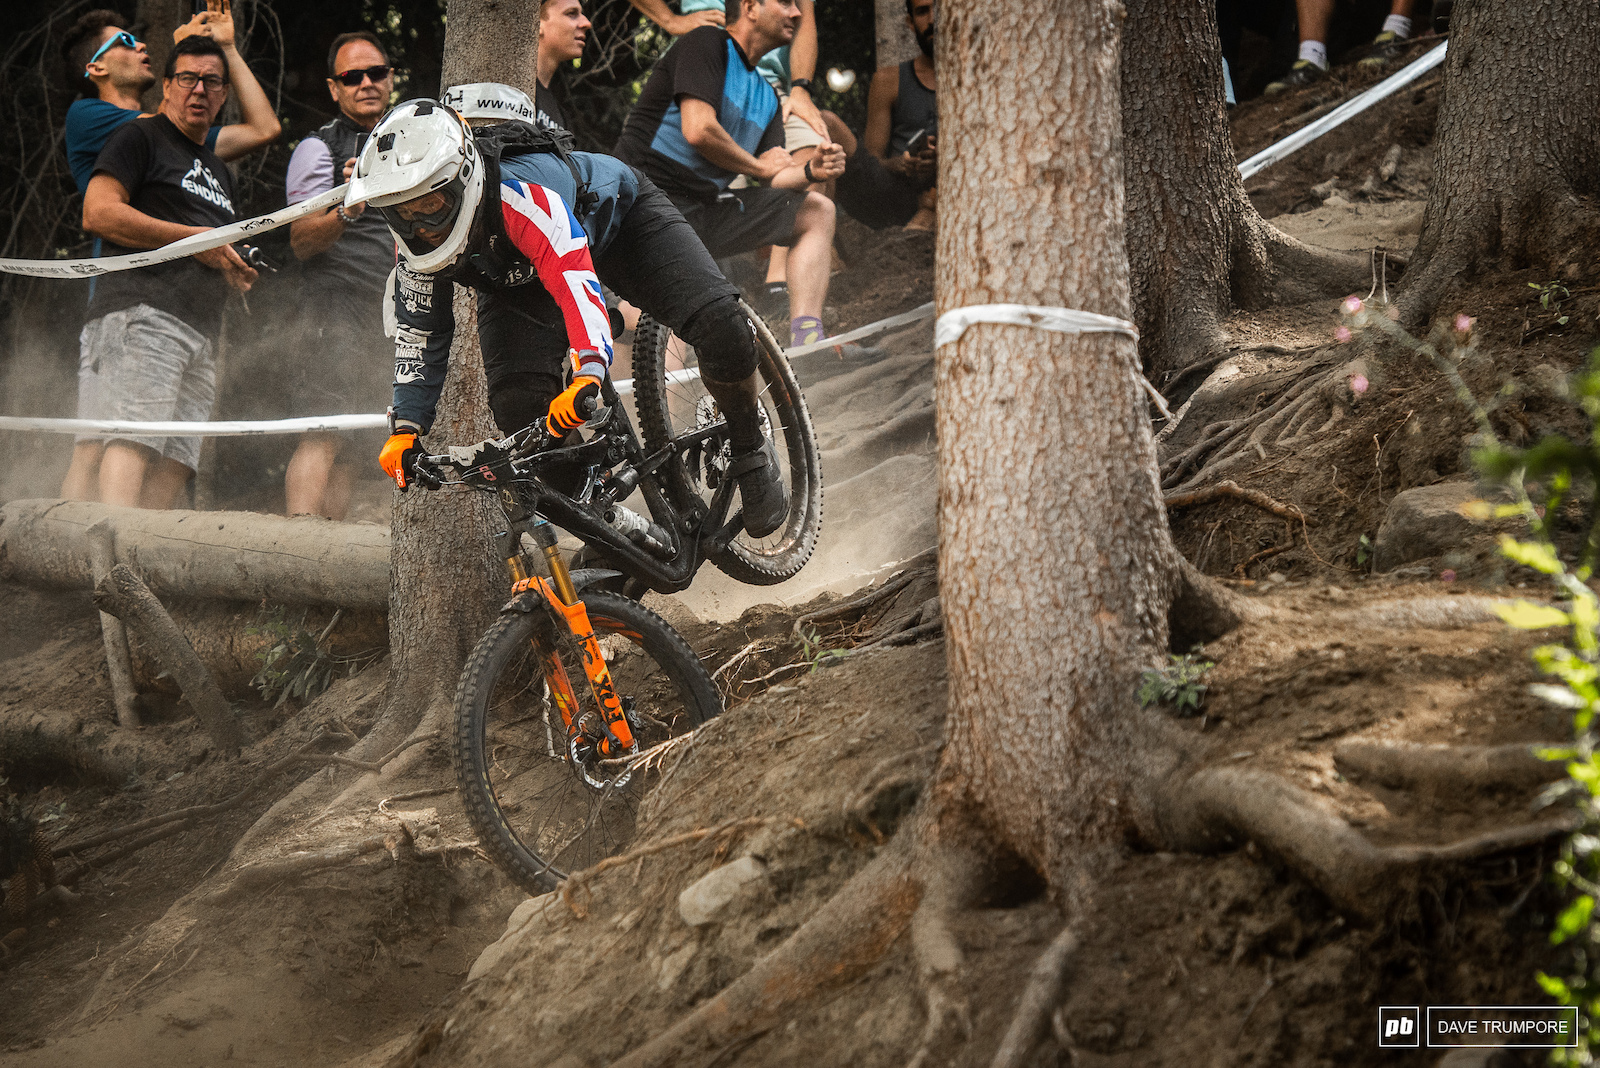 Sketchy moments for Bex Baraona on the final stage of the weekend.